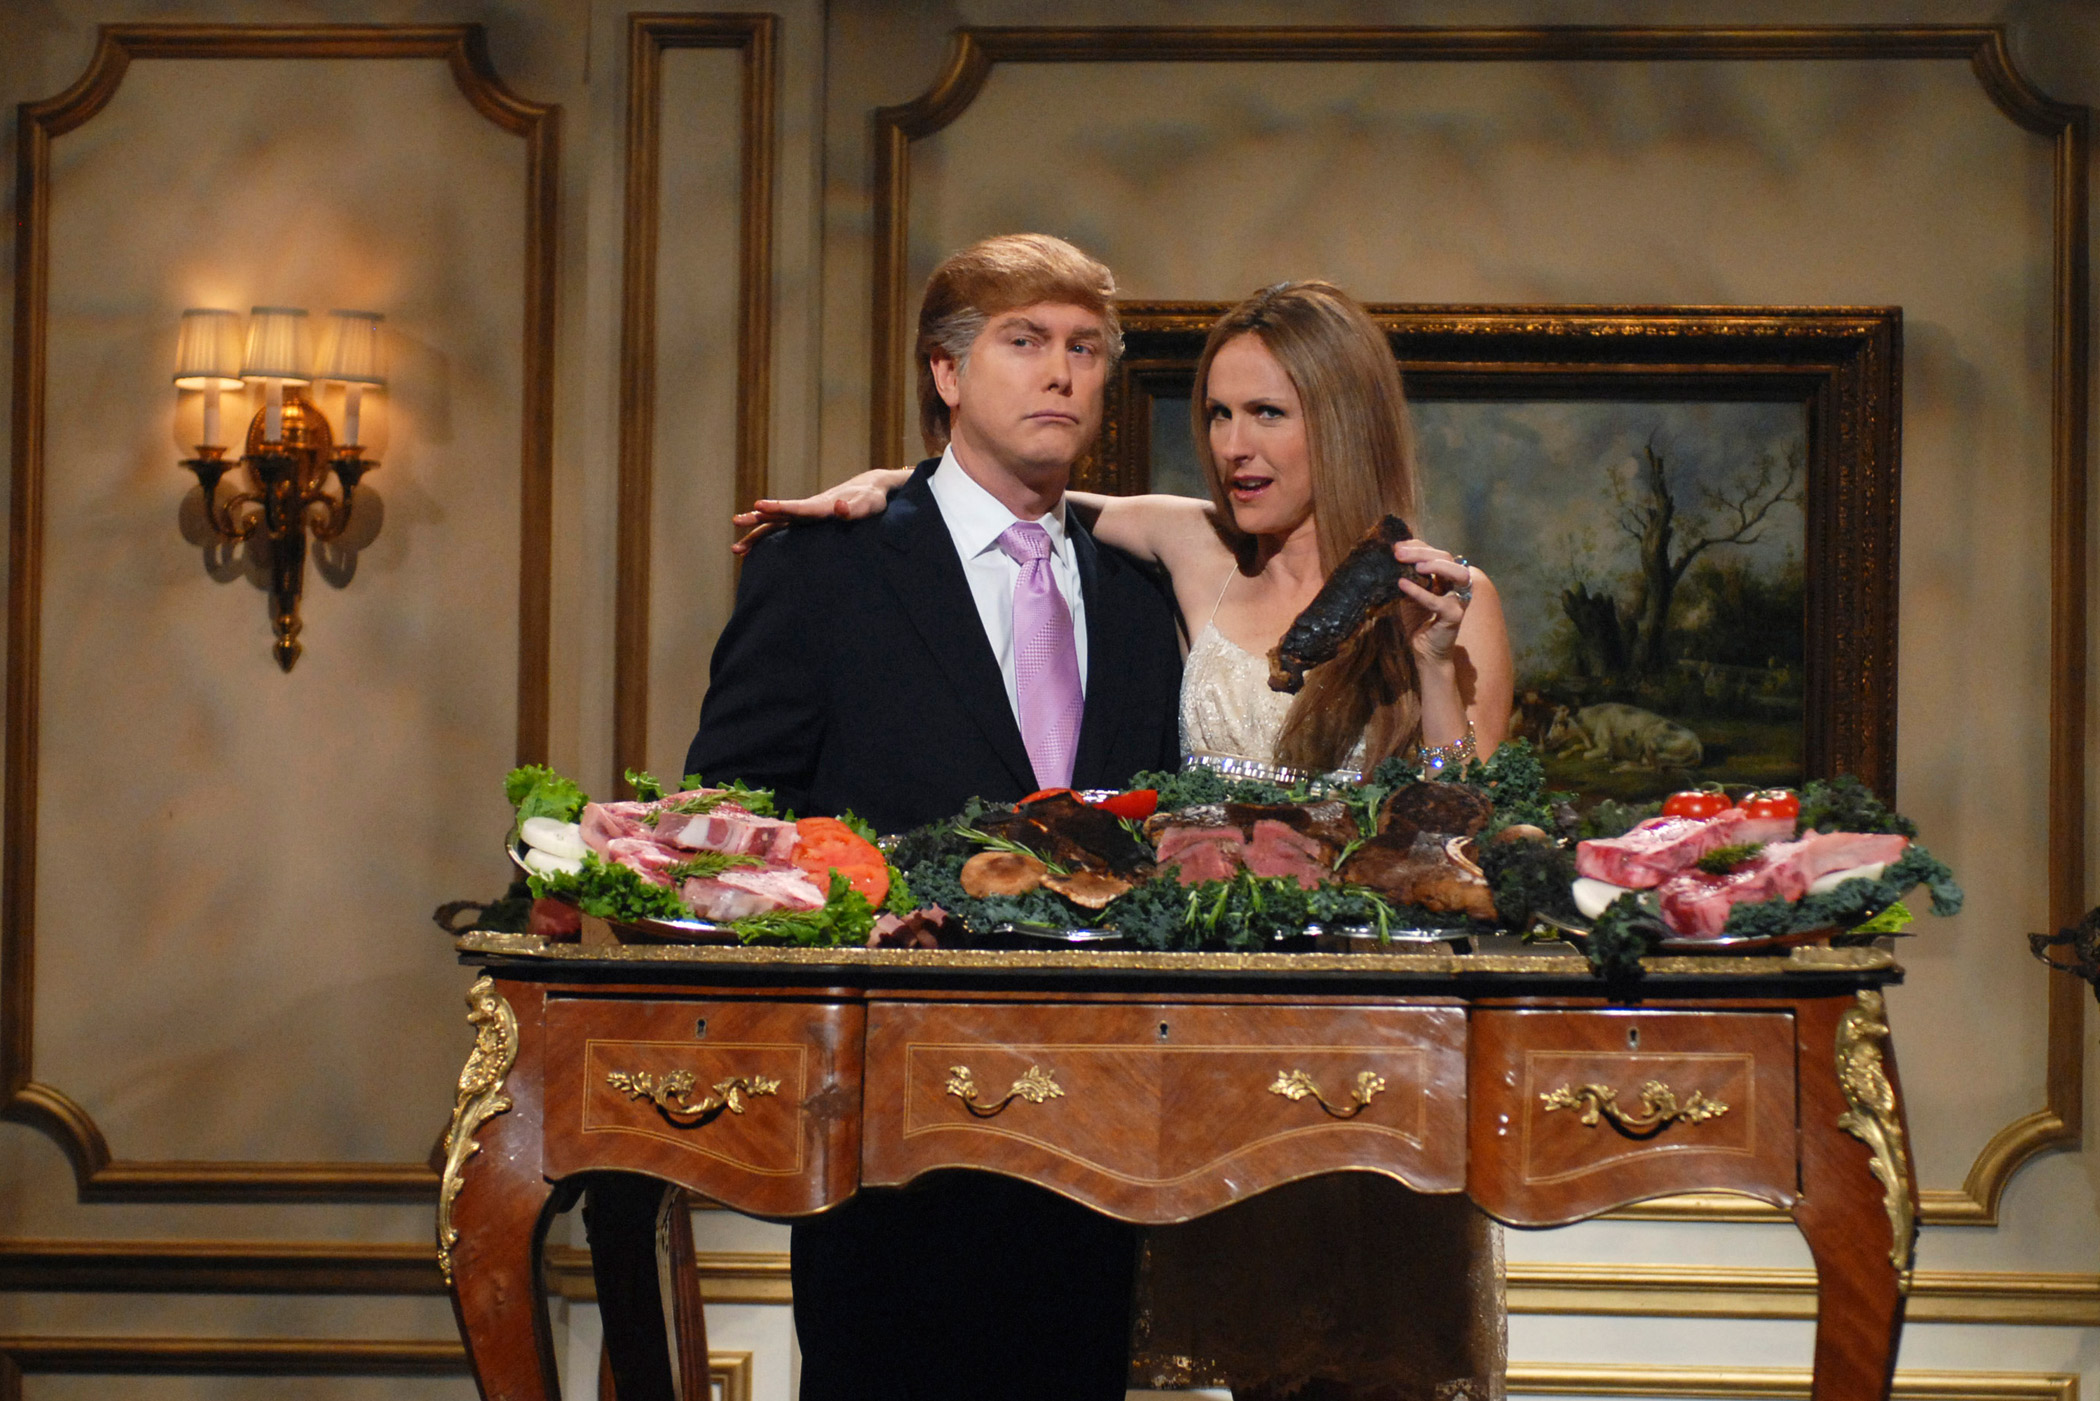 The SNL skit 'Trump Steaks' featured Darrell Hammond as Donald Trump and Molly Shannon as Melania Knauss on May 12, 2007.